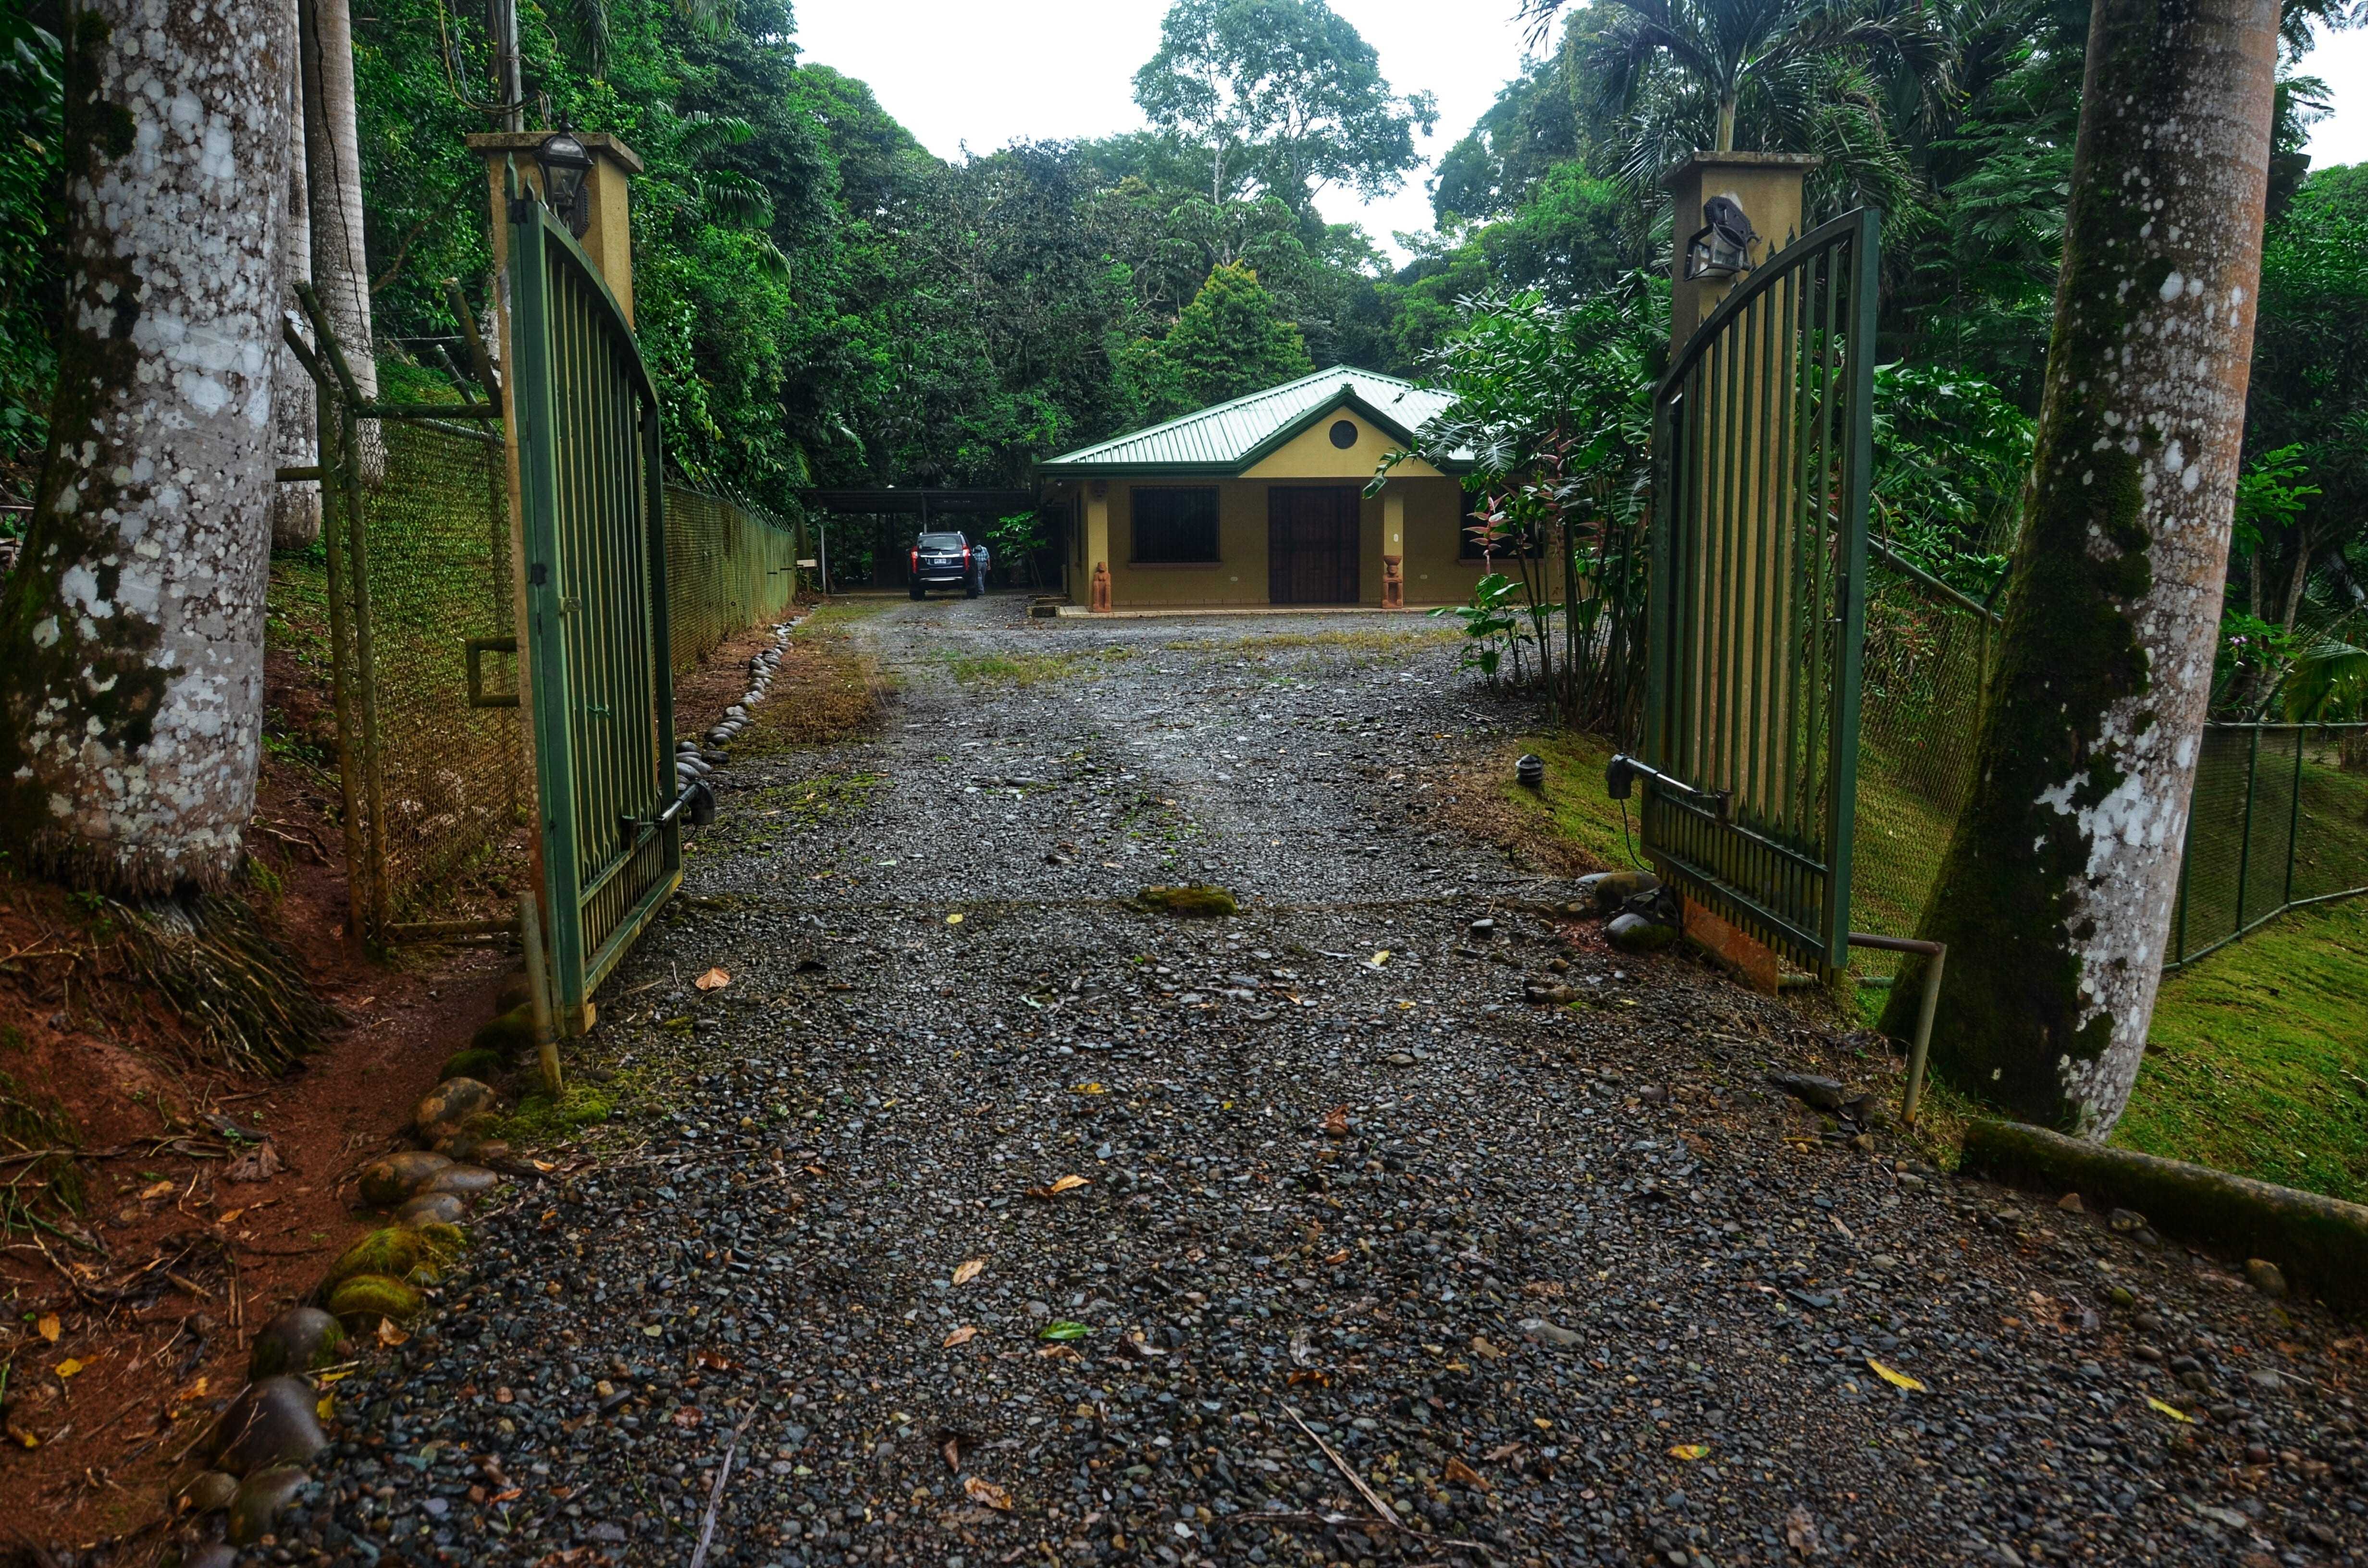 0.74 ACRES - 3 Bedroom Home + 2 Cabins + BBQ Lounge +Fish Pond+ 1 Minute From Main Road